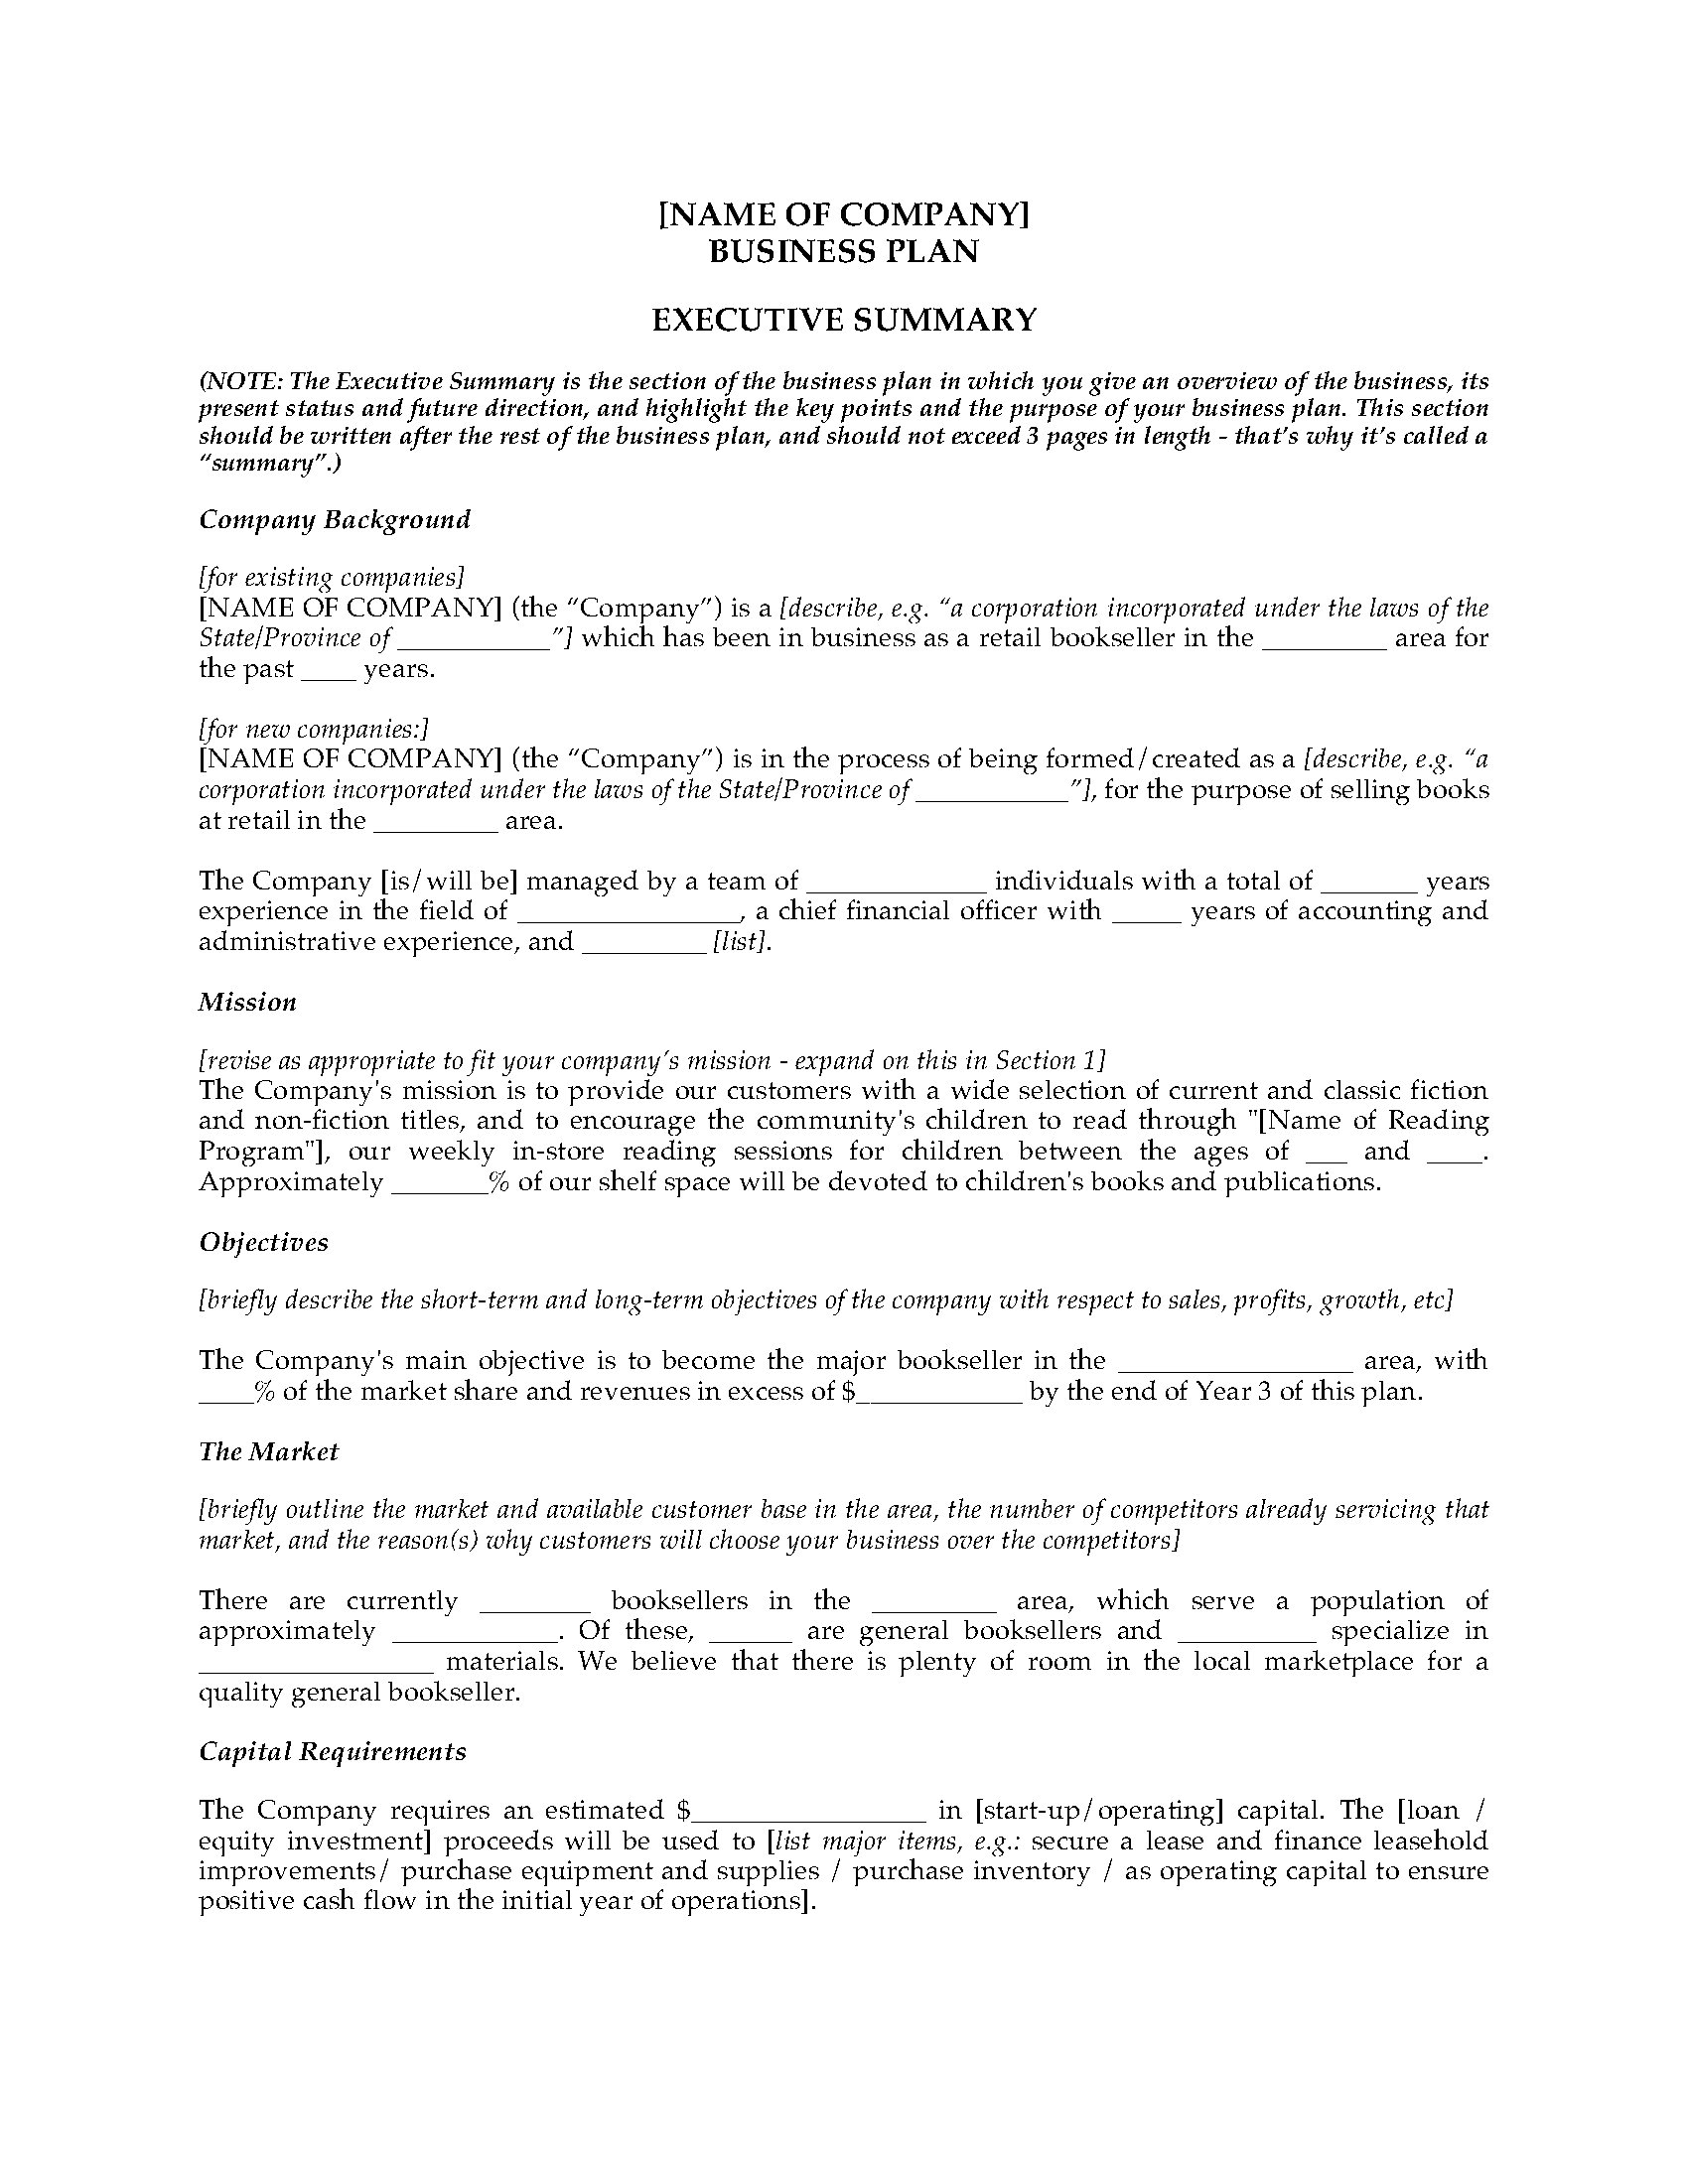 Book Store Business Plan Legal Forms And Business Templates - Bookstore business plan template